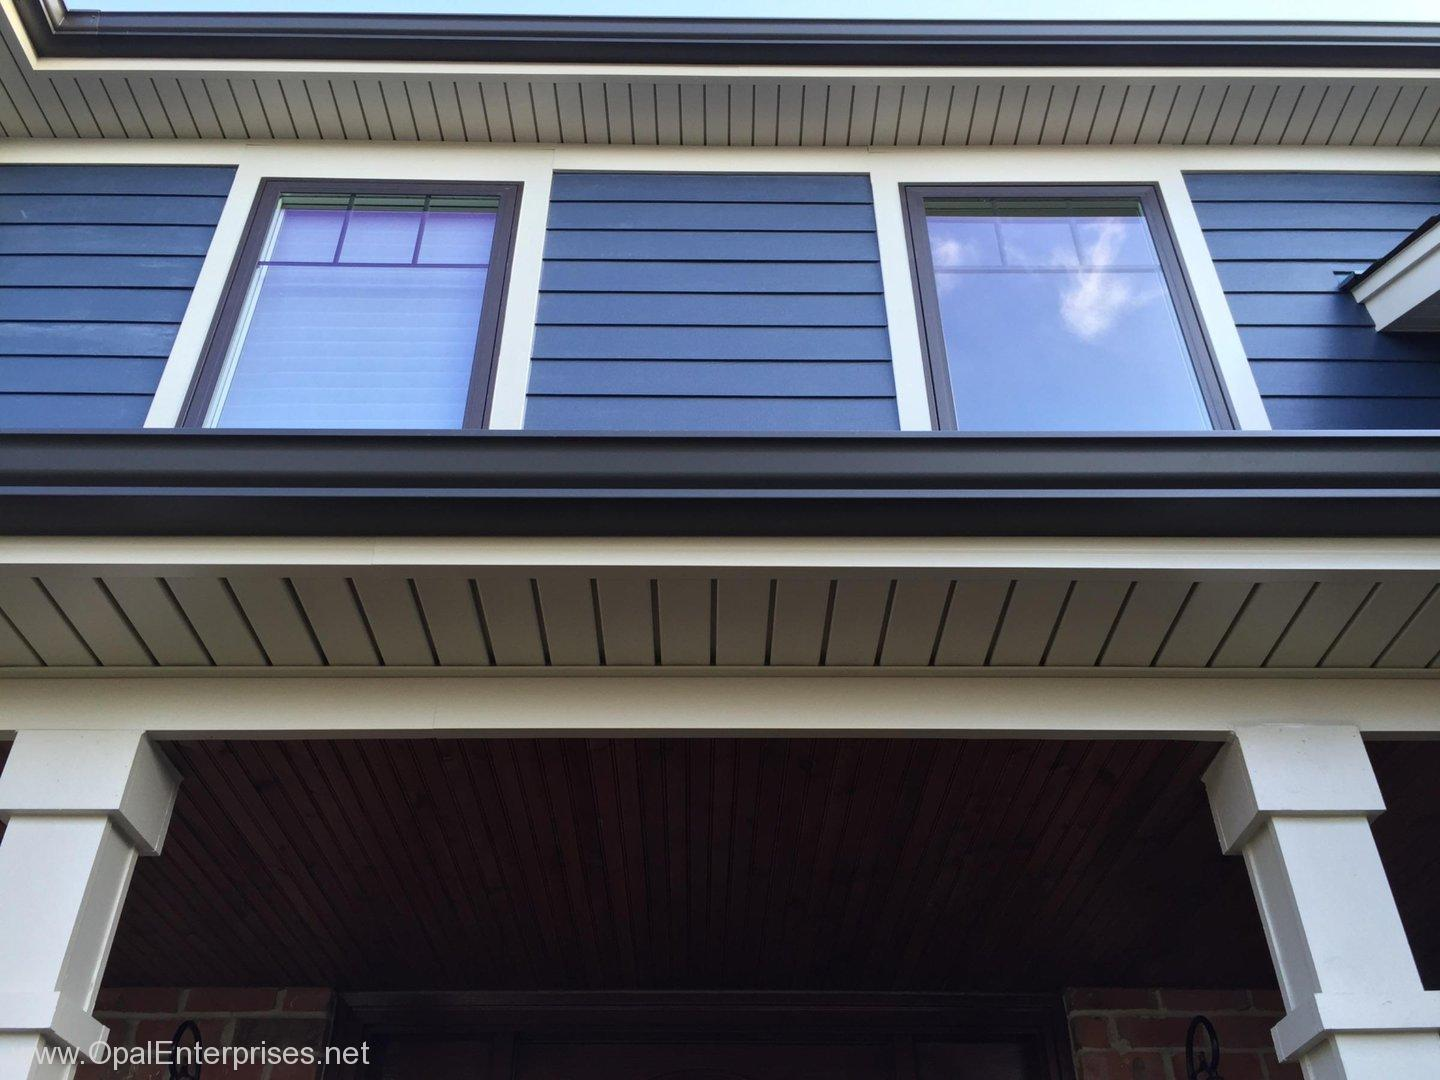 Deep Ocean James Hardie Siding paired with Andersen 100 Series Windows